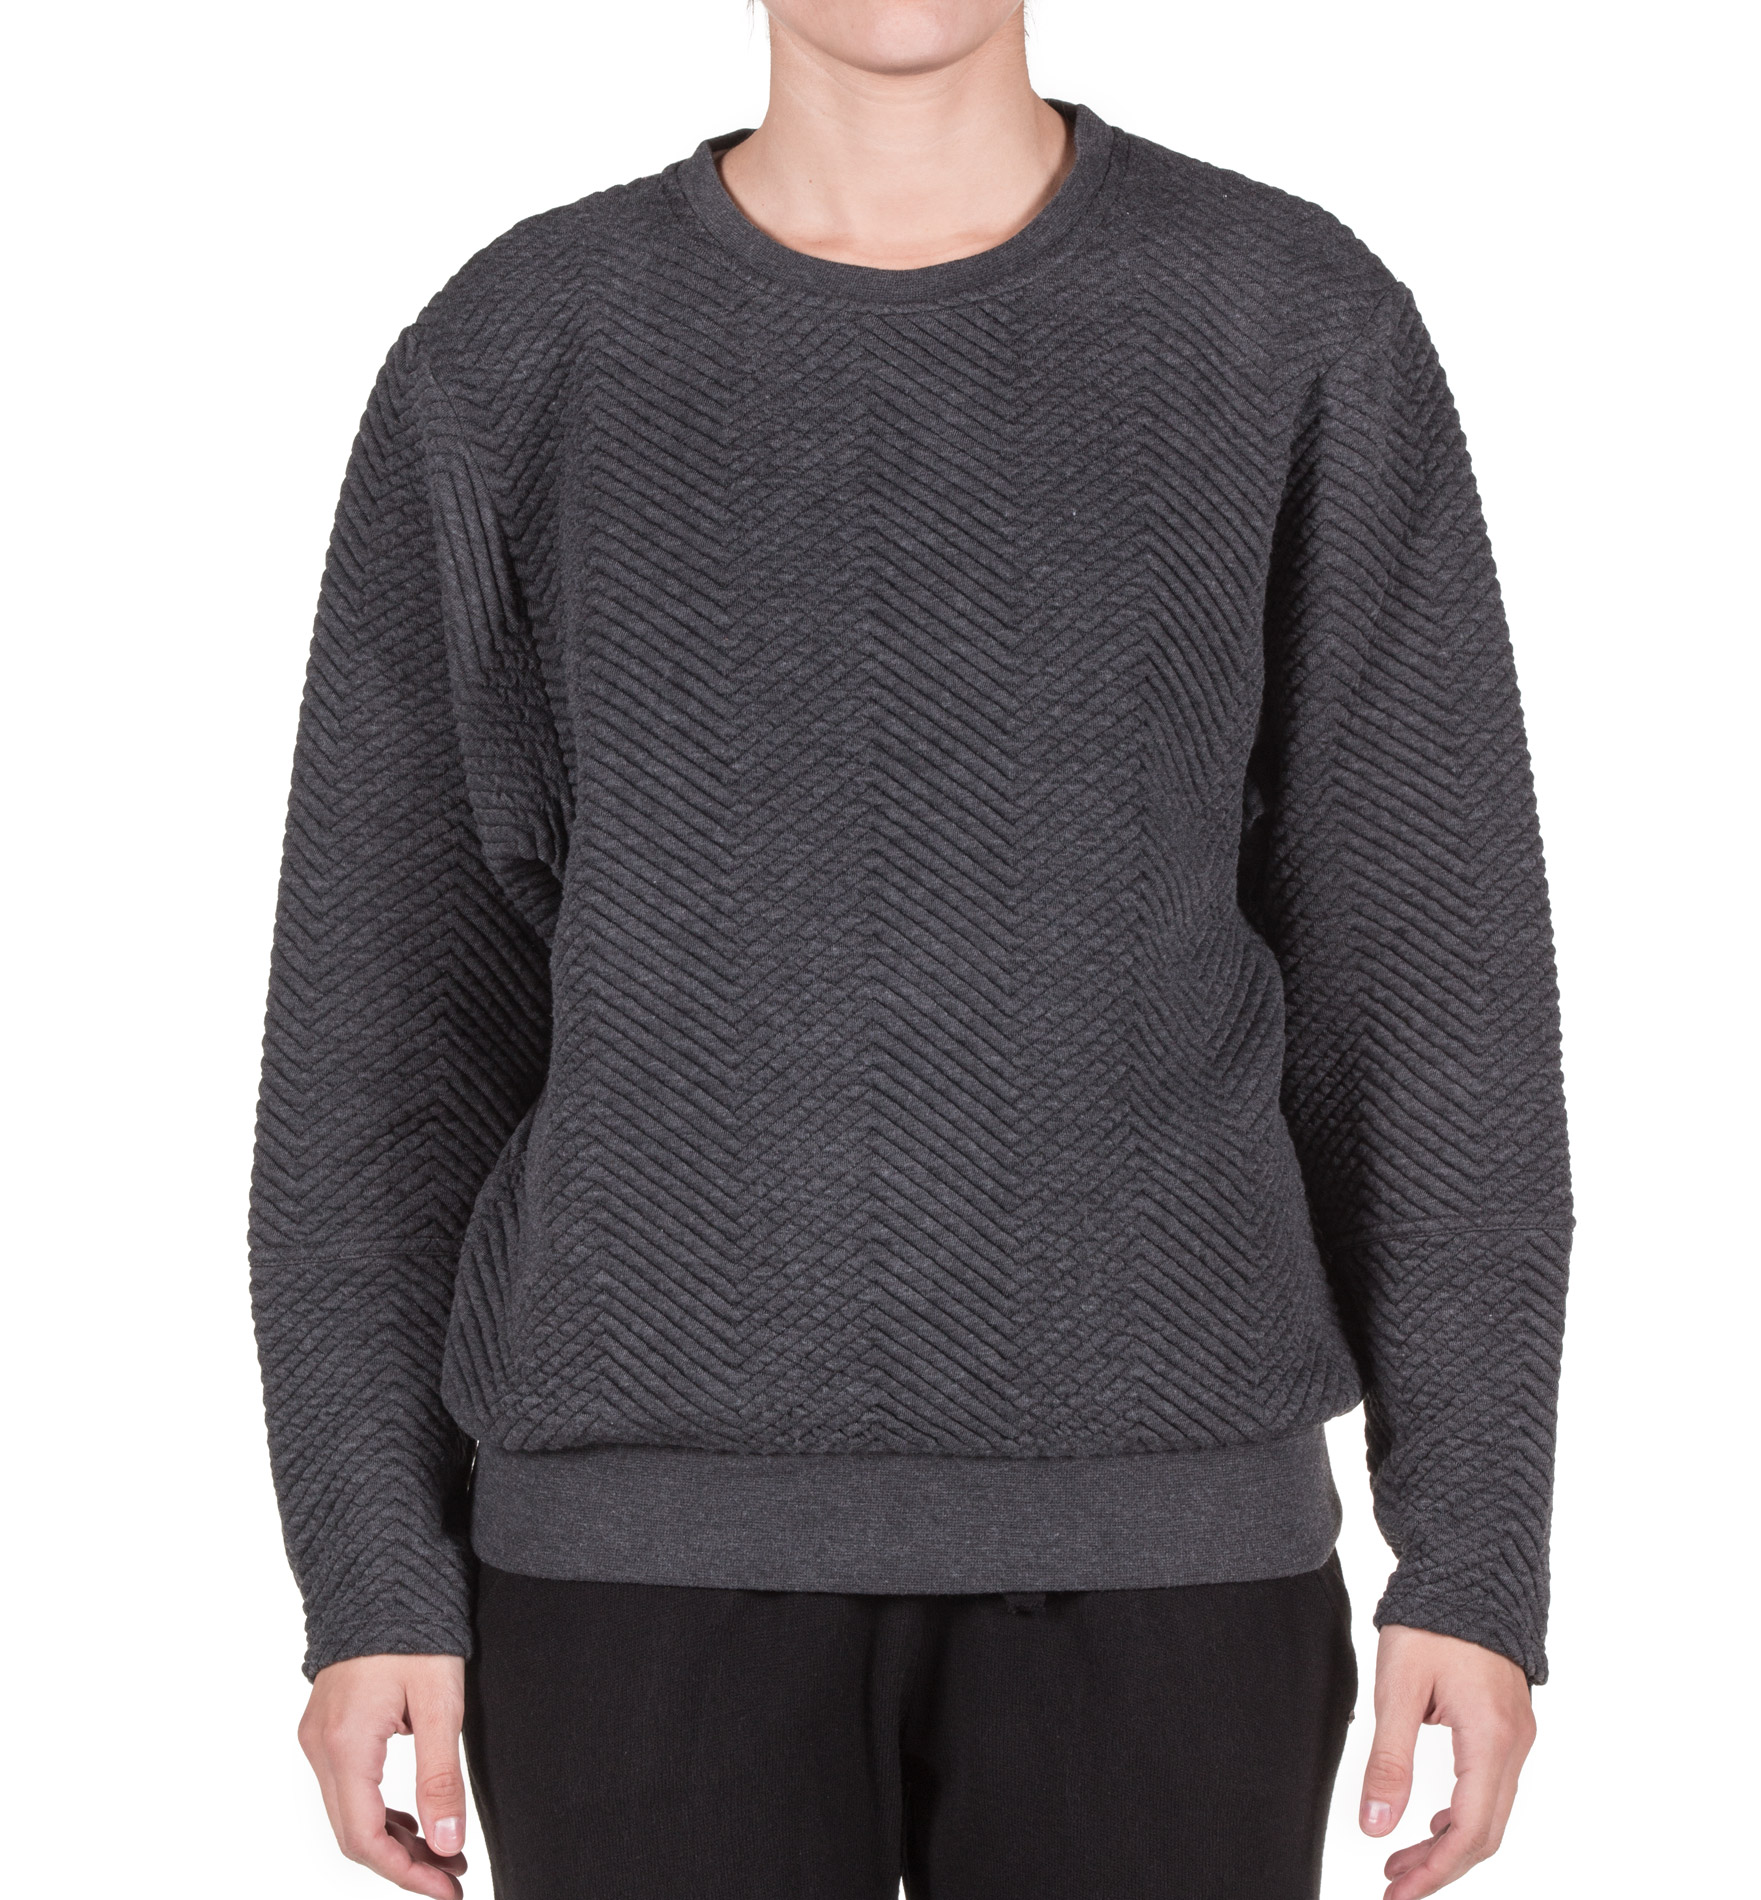 O'NEILL LW QUILTED SWEATSHIRT 7P6416-8029 Ανθρακί